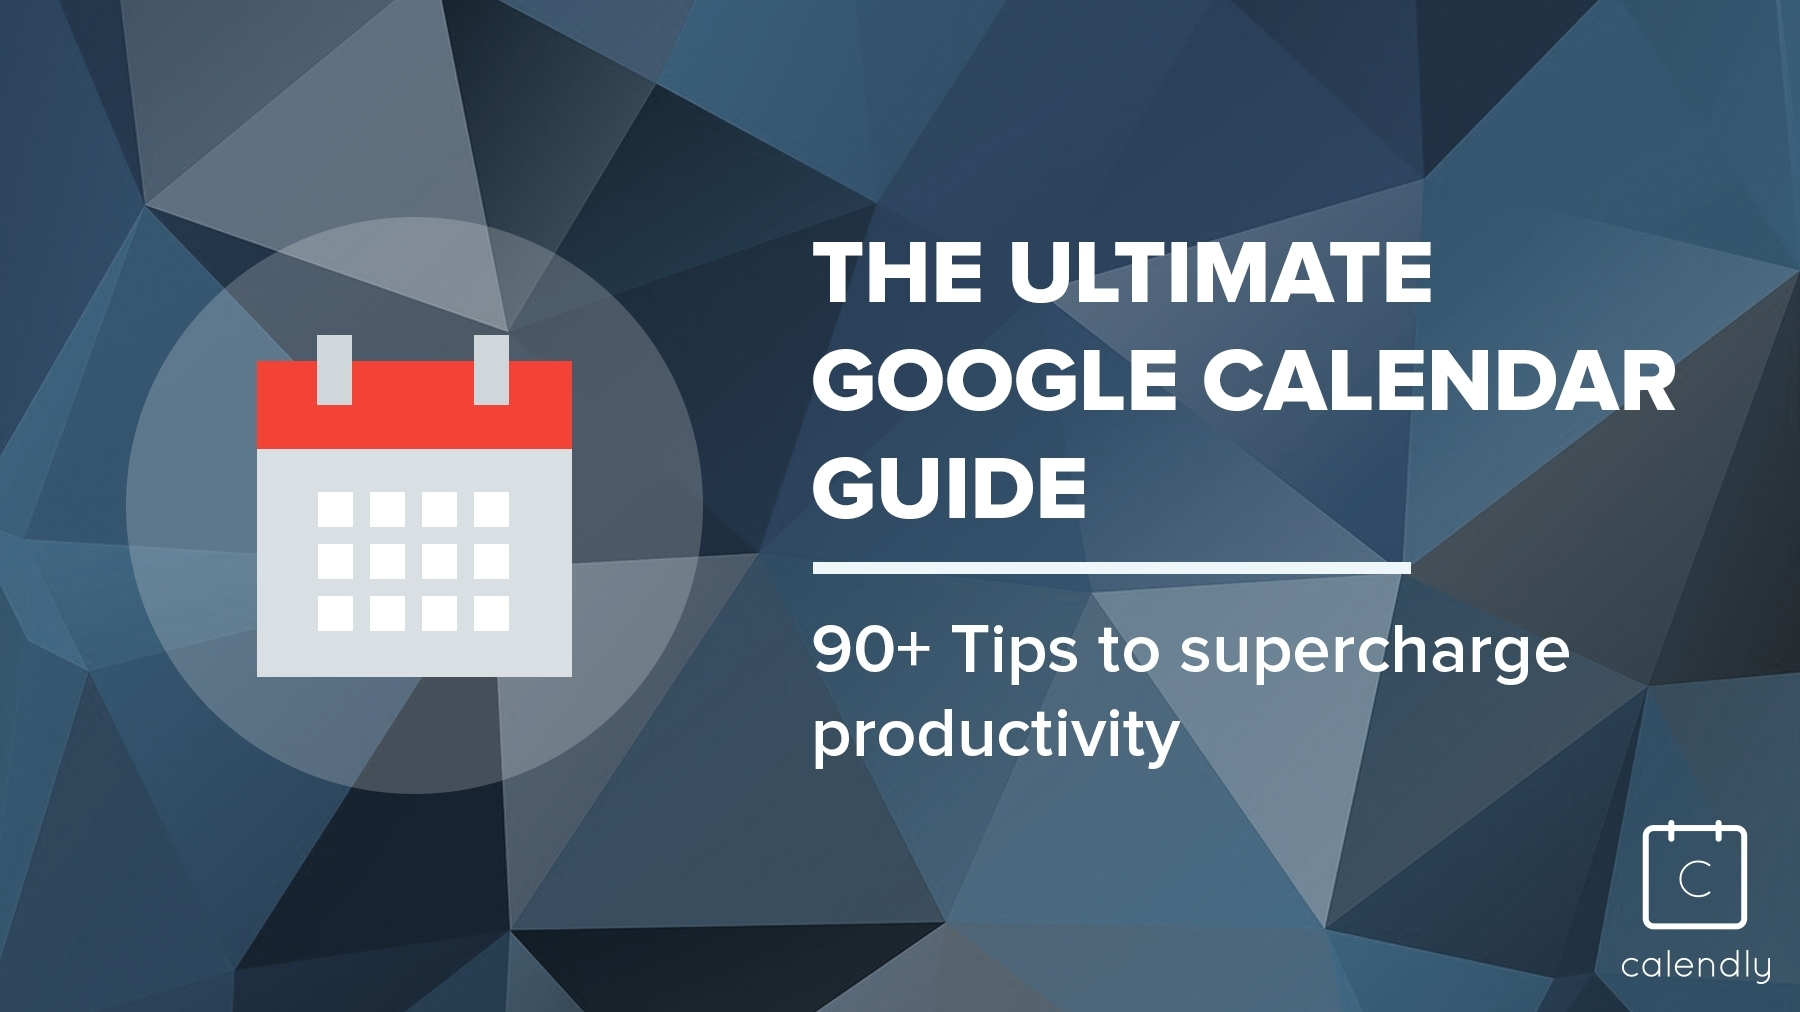 Blog - The Ultimate Google Calendar Guide: 90+ Tips